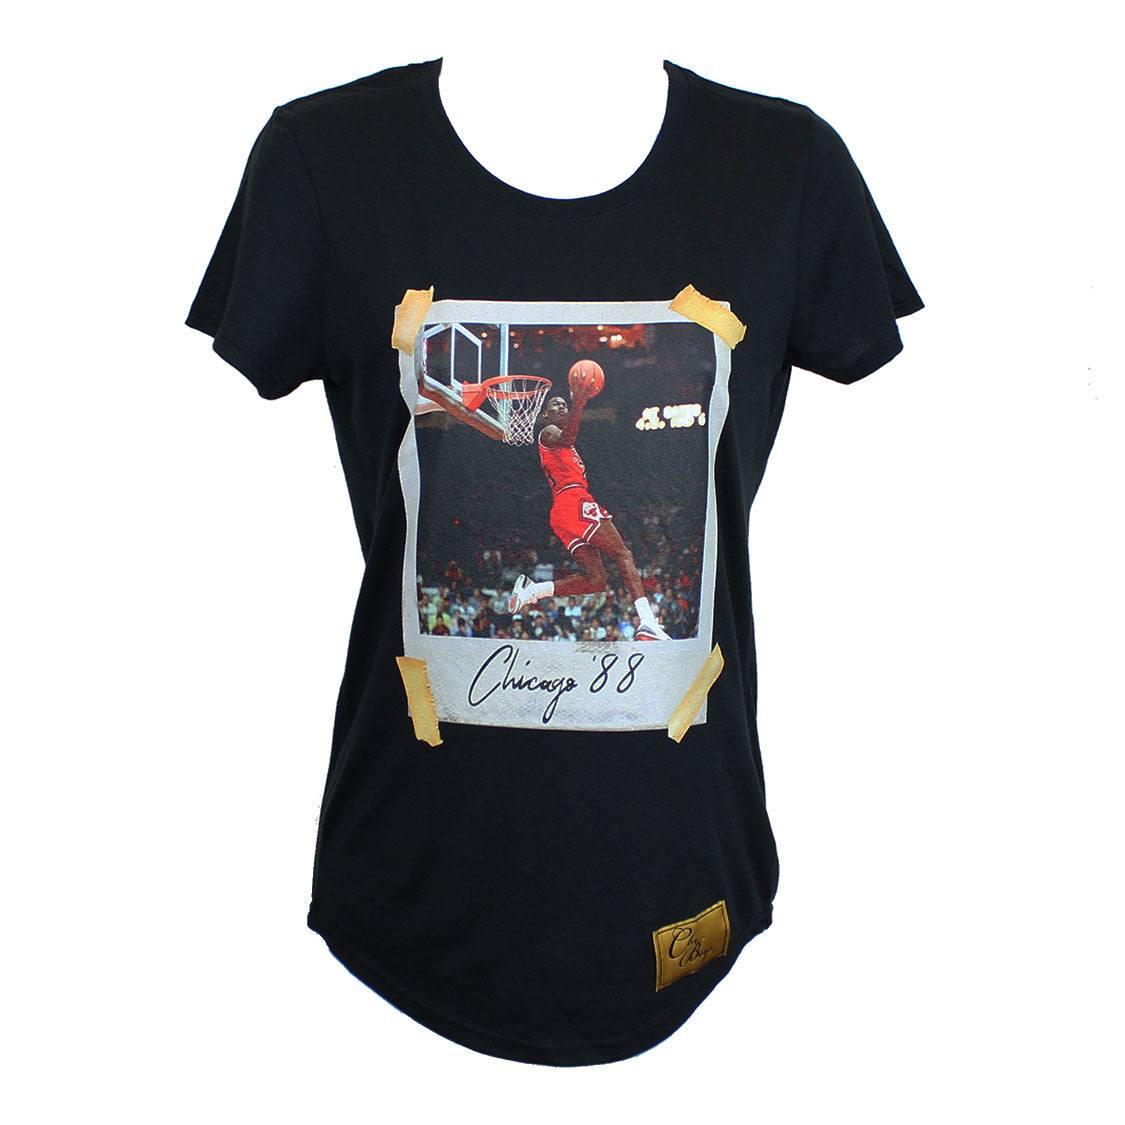 Chicago '88 Pay Homage Tee Ladies (Black)